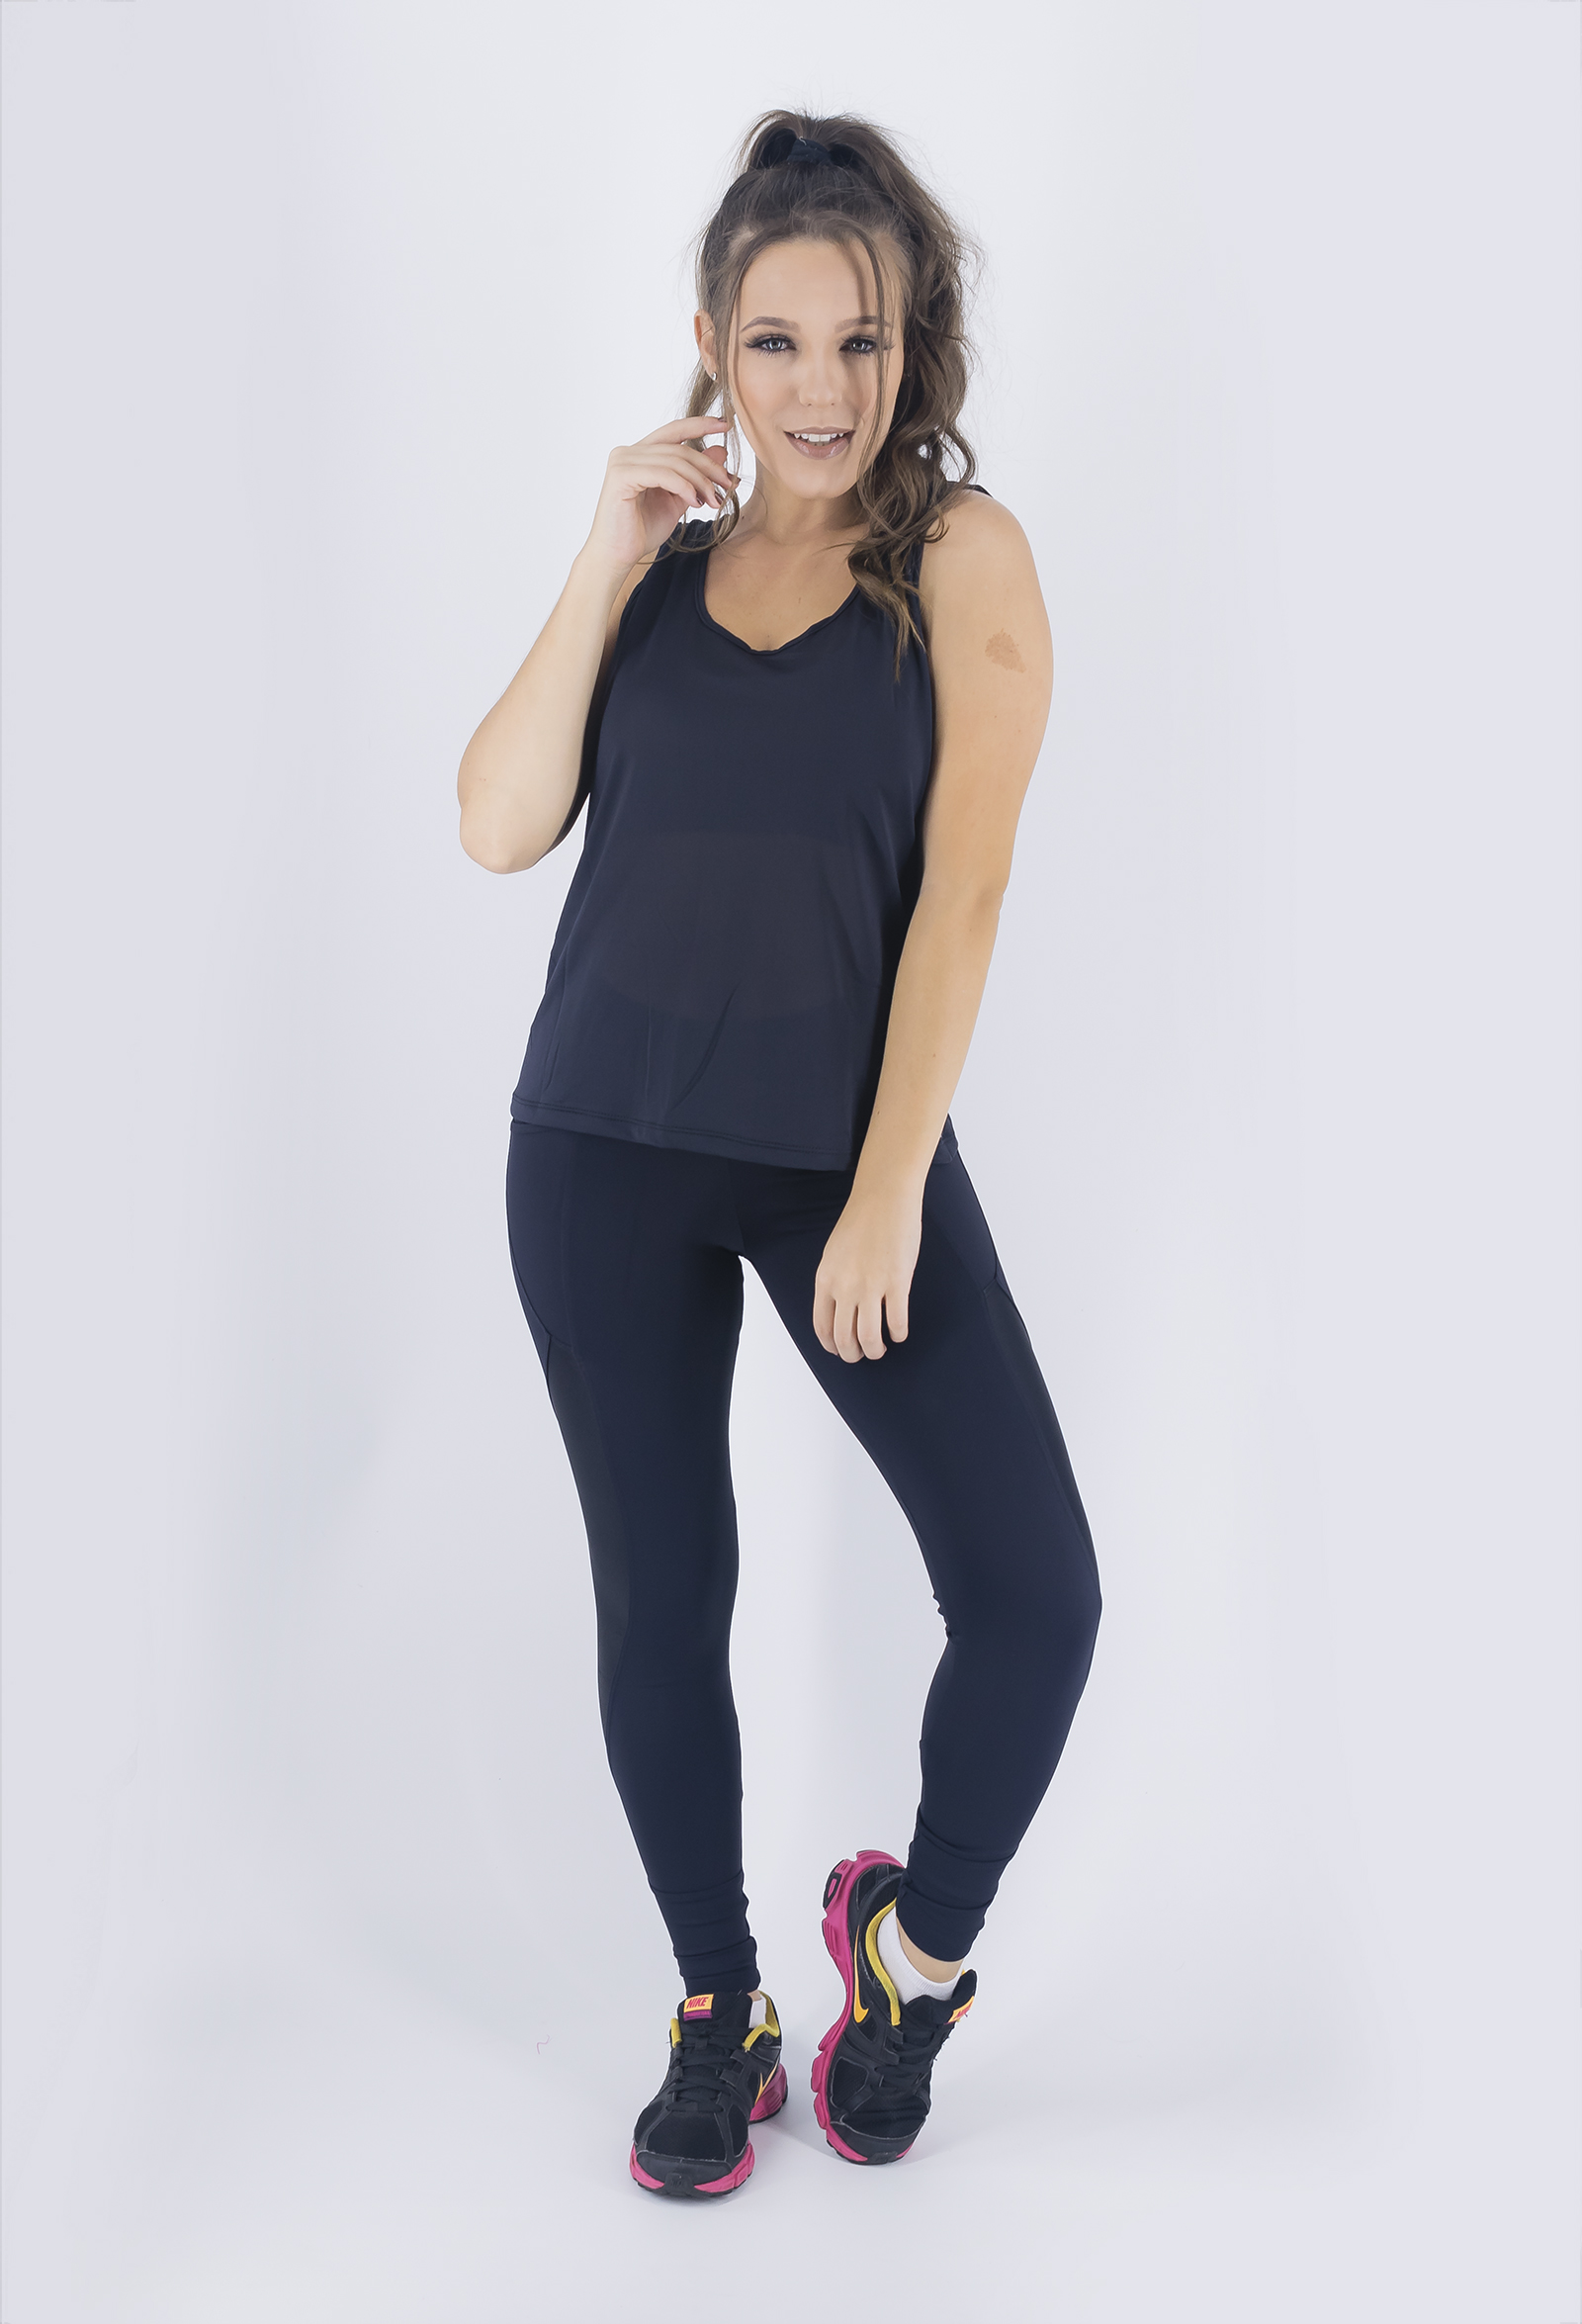 Regata Unique Preta, Coleção Just For You - NKT Fitwear Moda Fitness